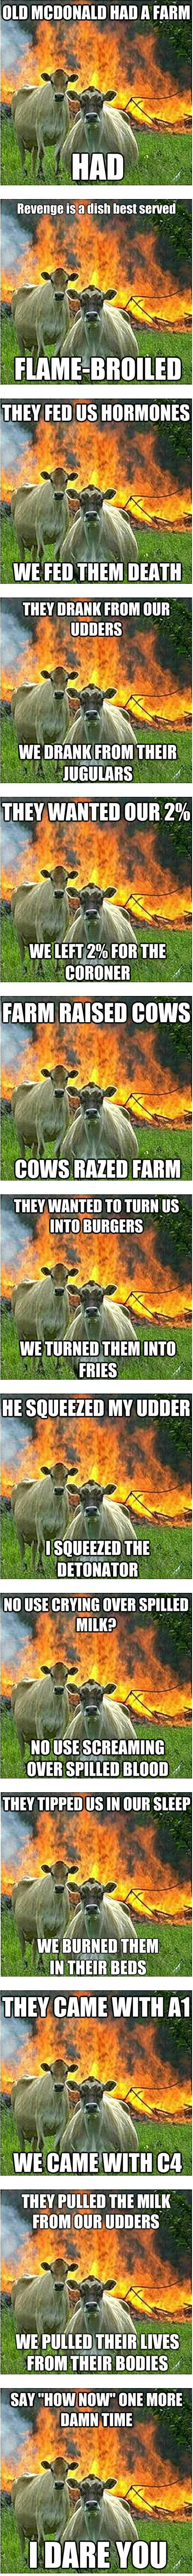 Best of the Angry Cow meme.